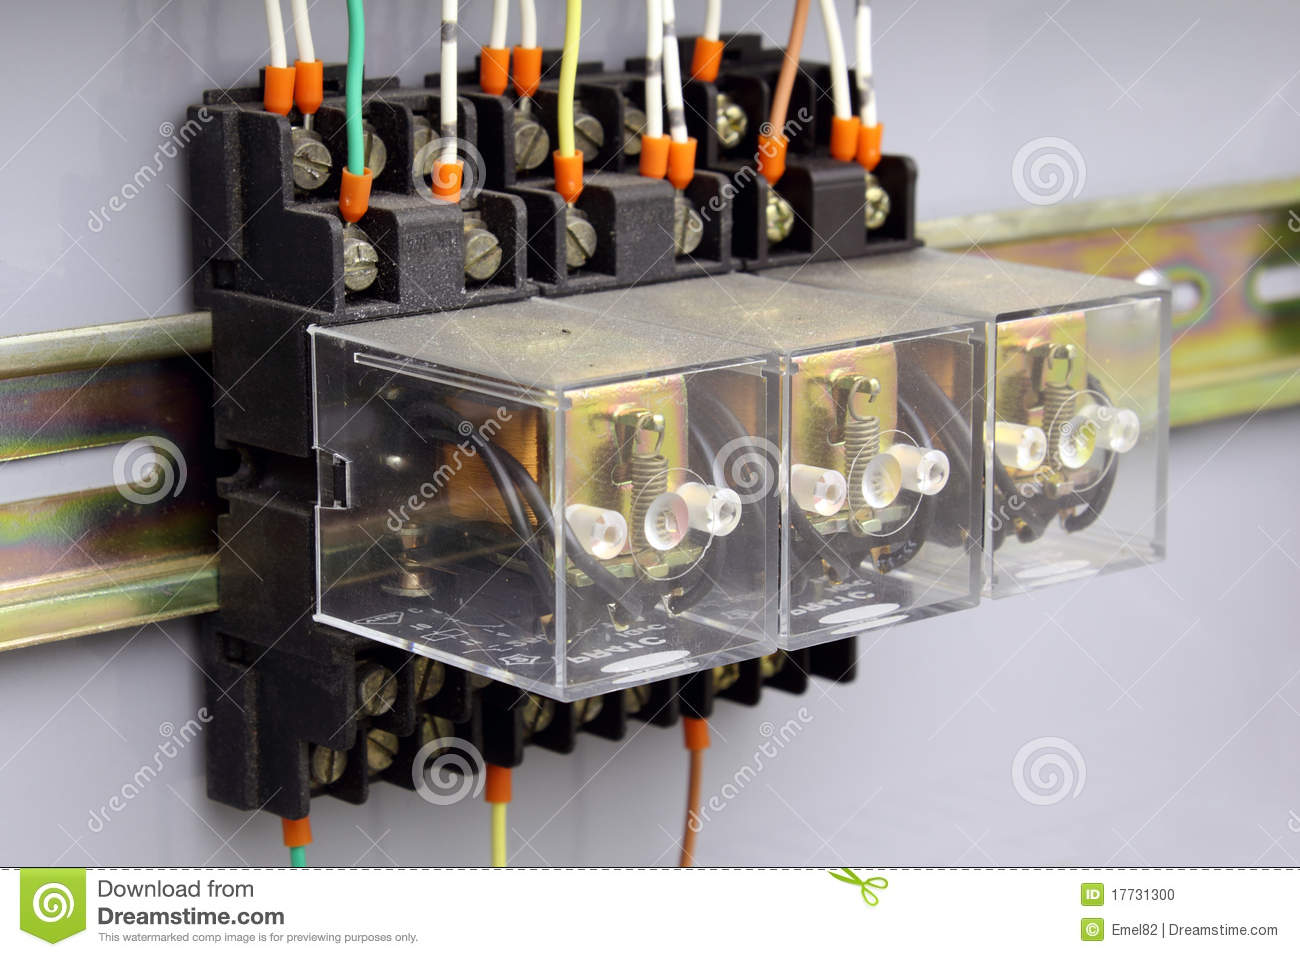 electrical relays stock photo image of electricity connection rh dreamstime com Electrical Relay Cross Reference Electrical Relay Symbols